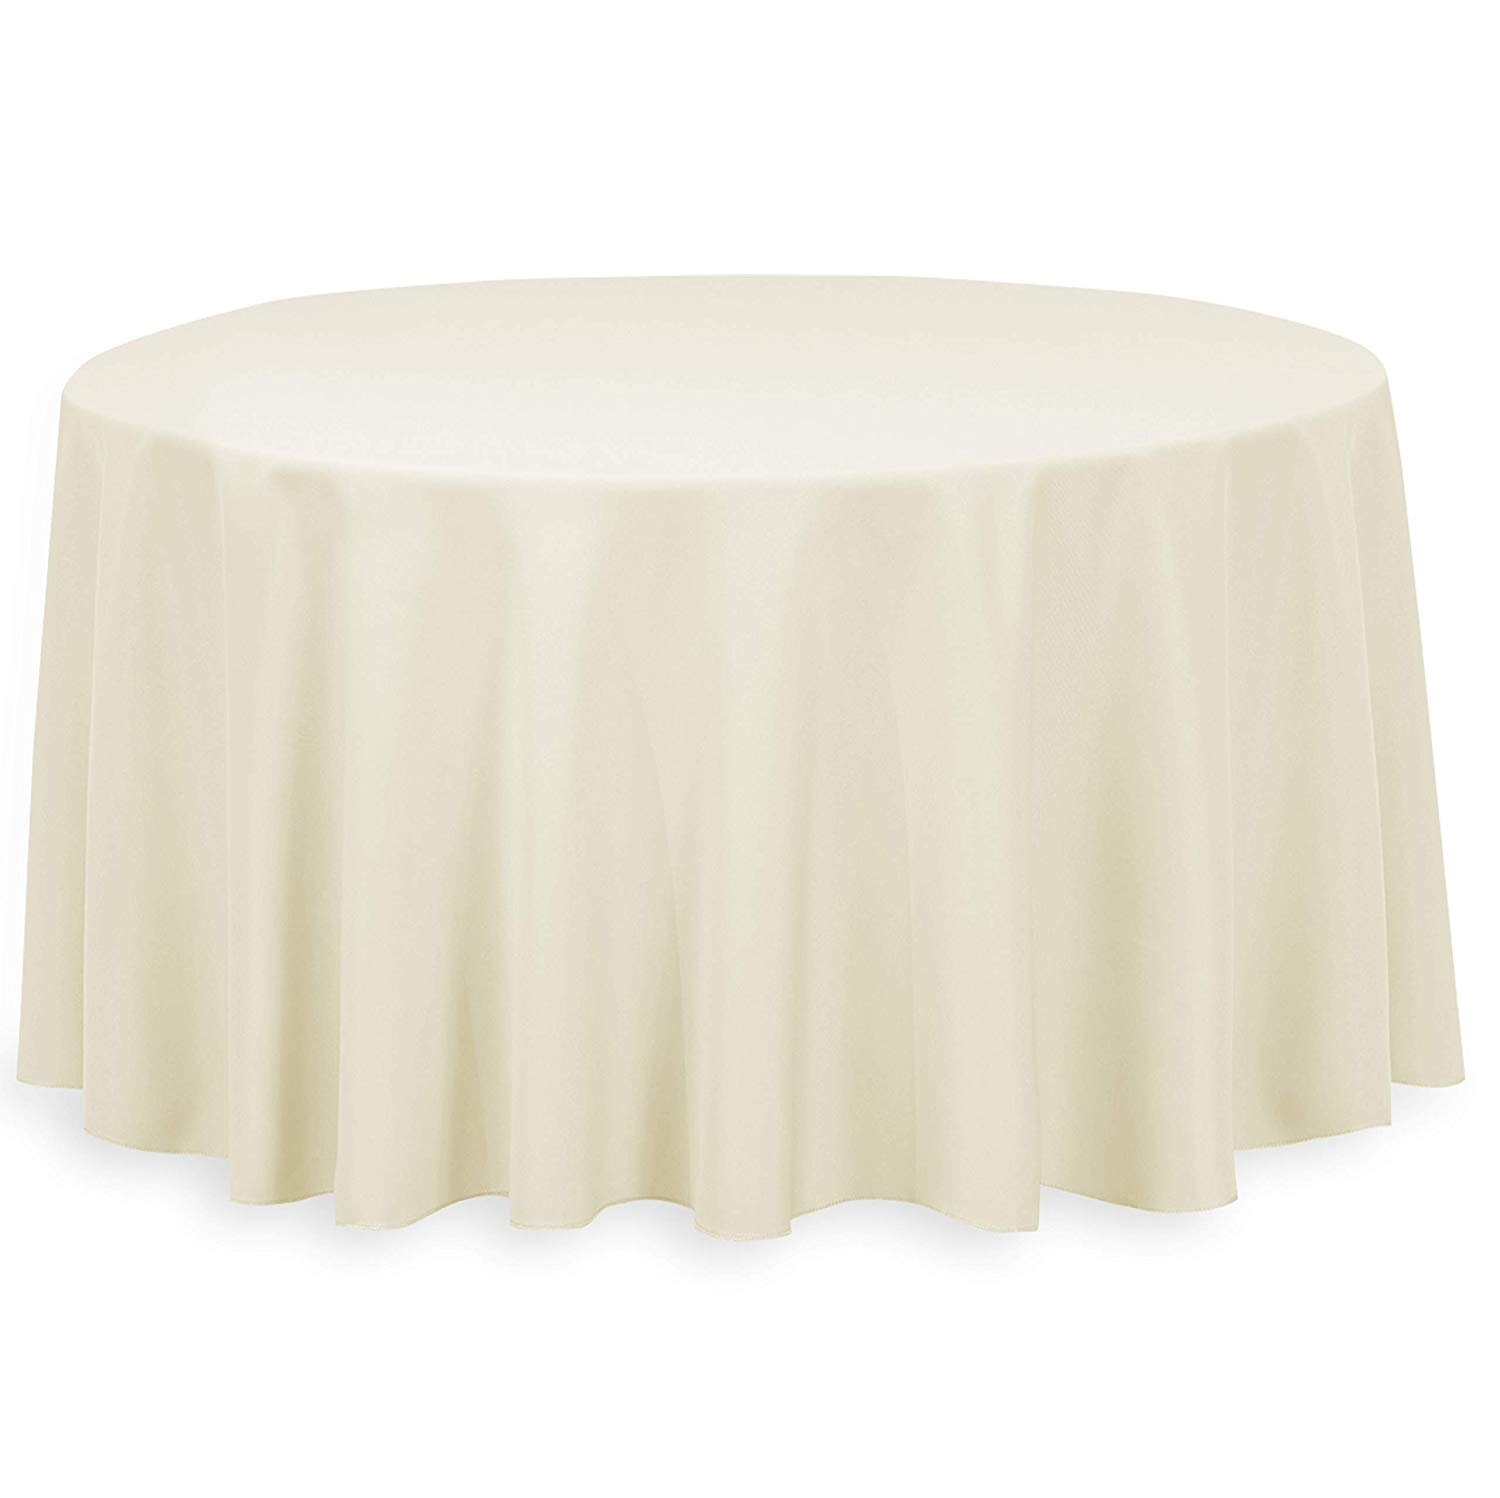 IVORY LINEN ROUND TABLECLOTH (3.3 M DIA.)  $20+GST